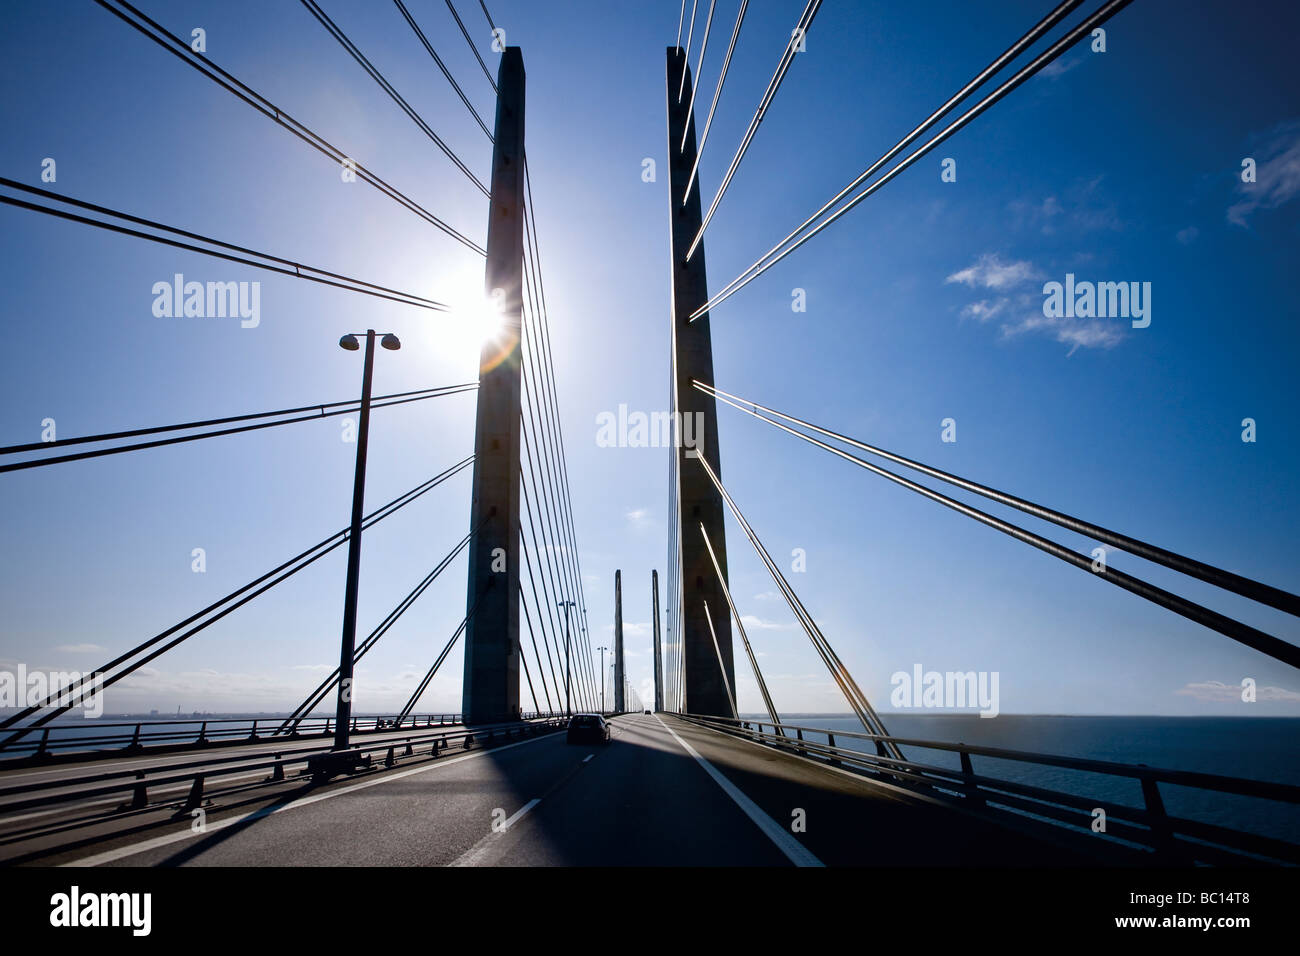 The pylons on the Oresund Bridge between Denmark and Sweden - Stock Image